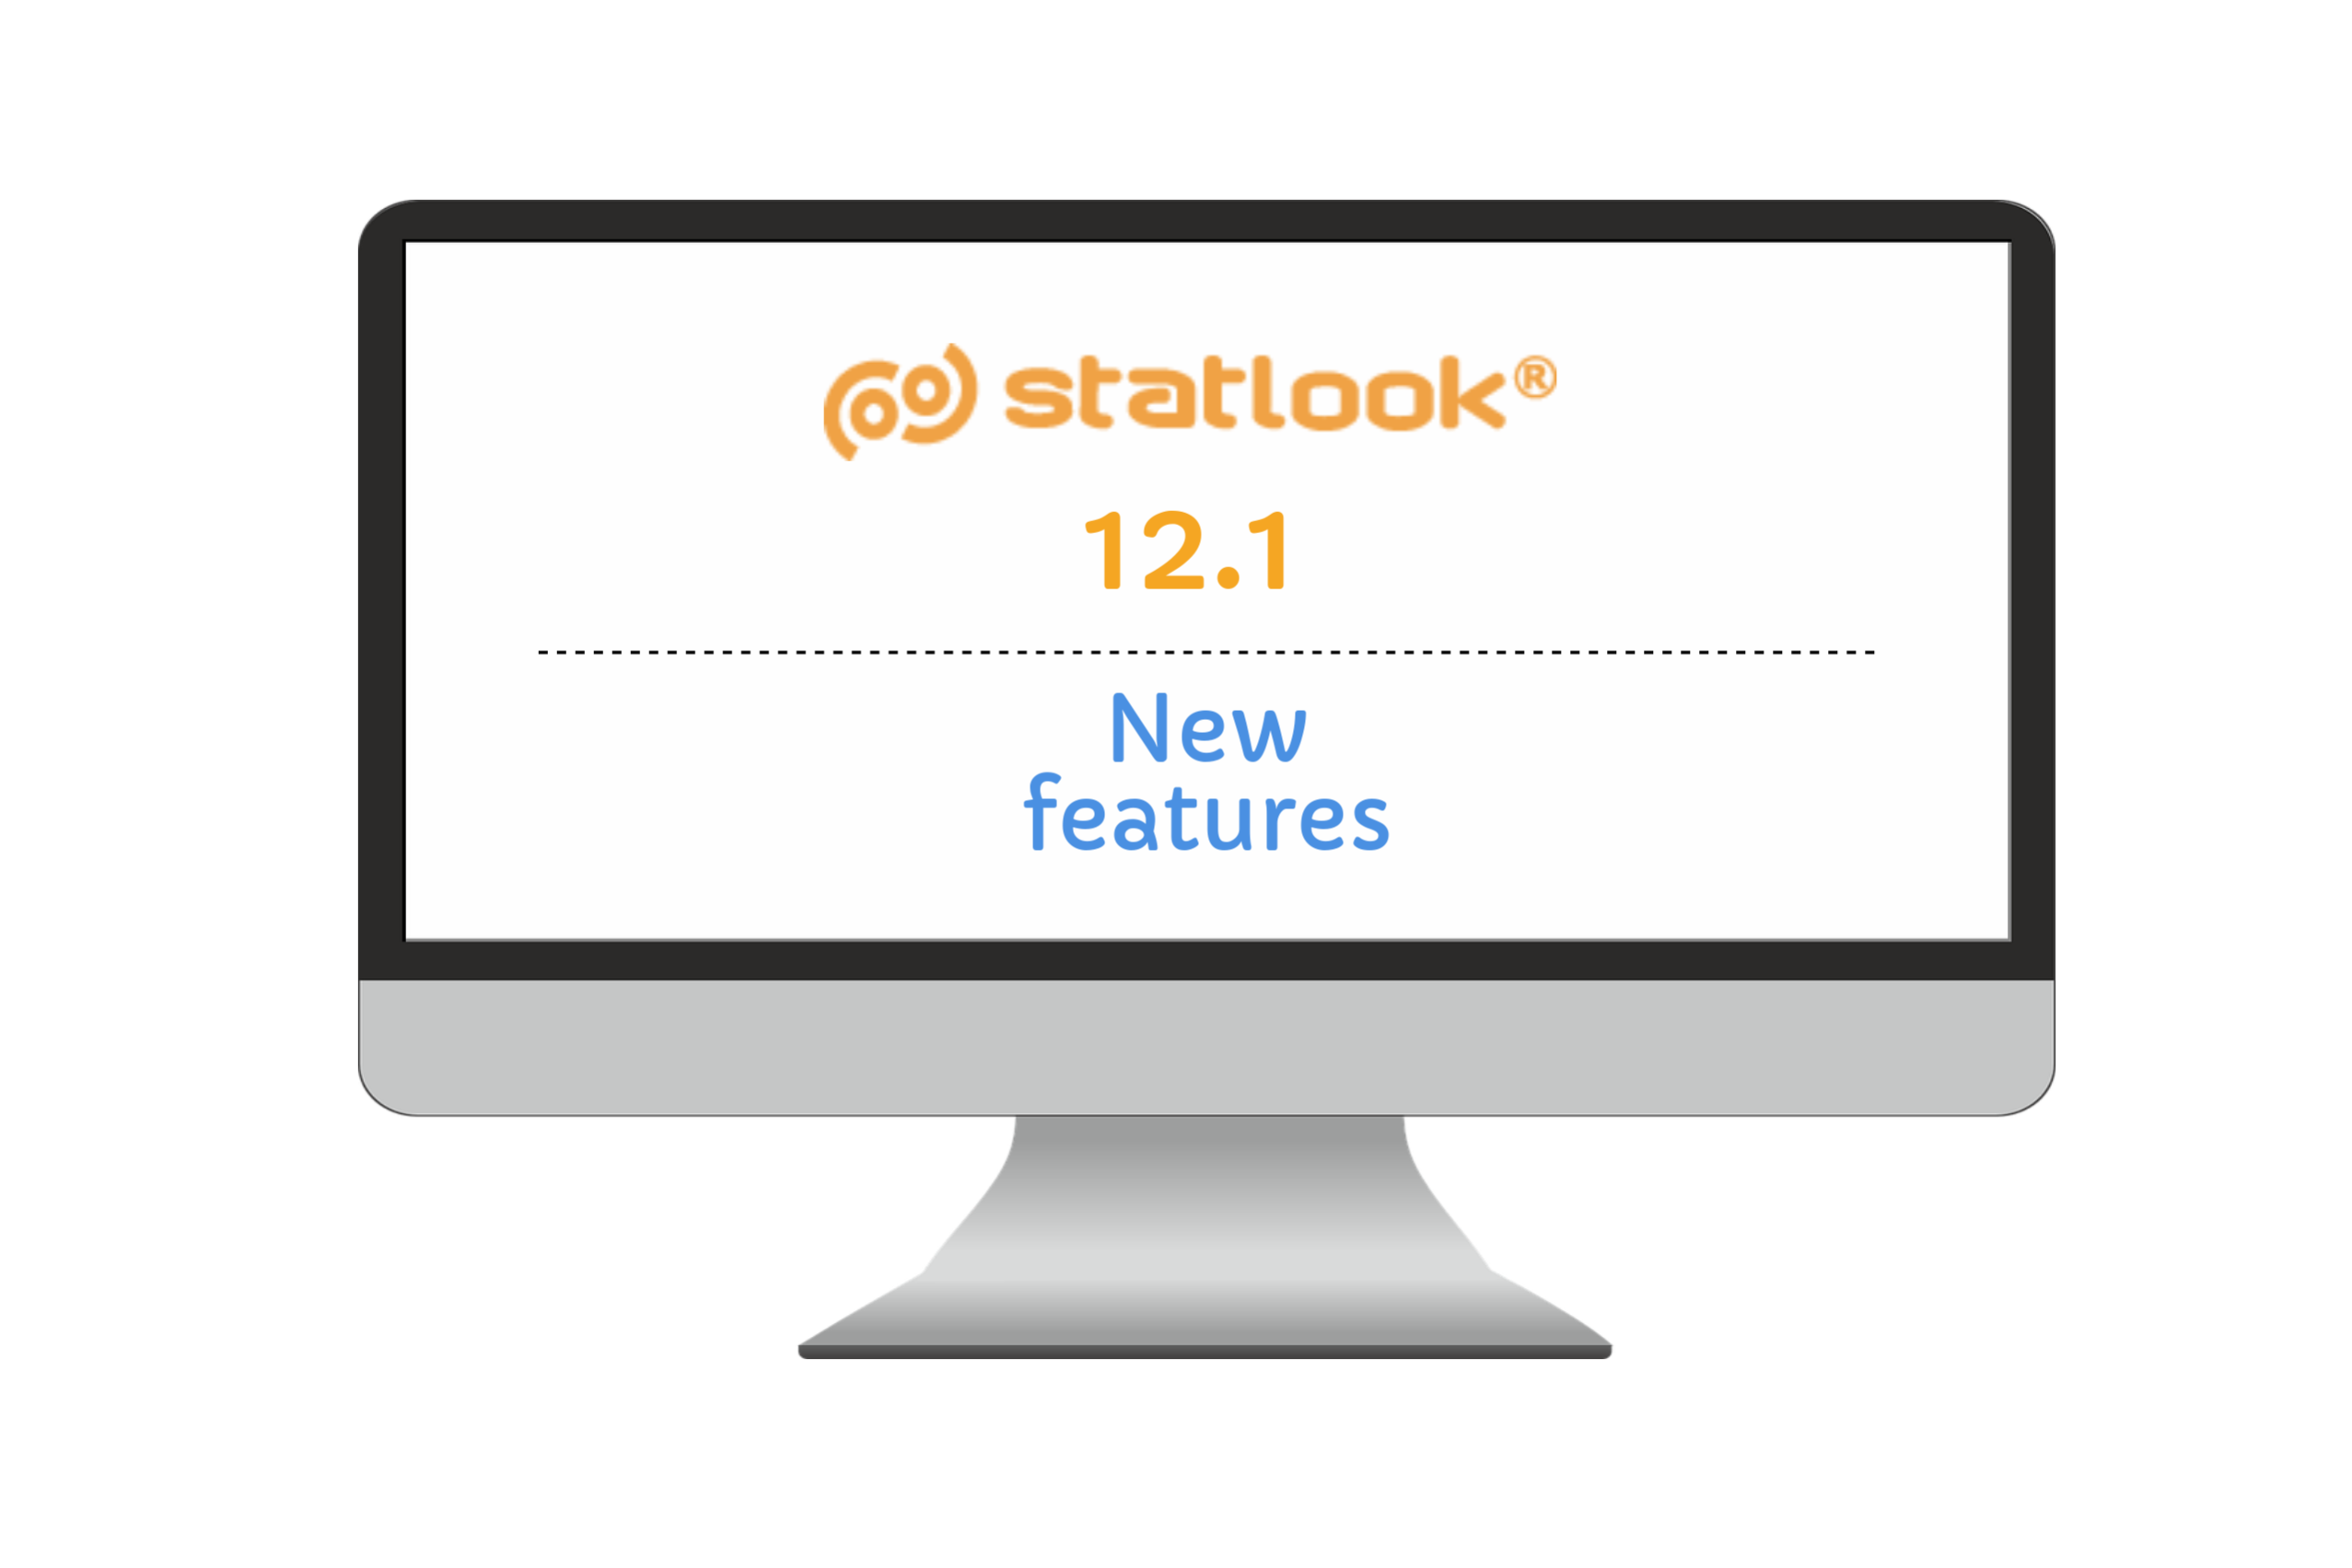 a monitor presenting the title - statlook 12.1 new features